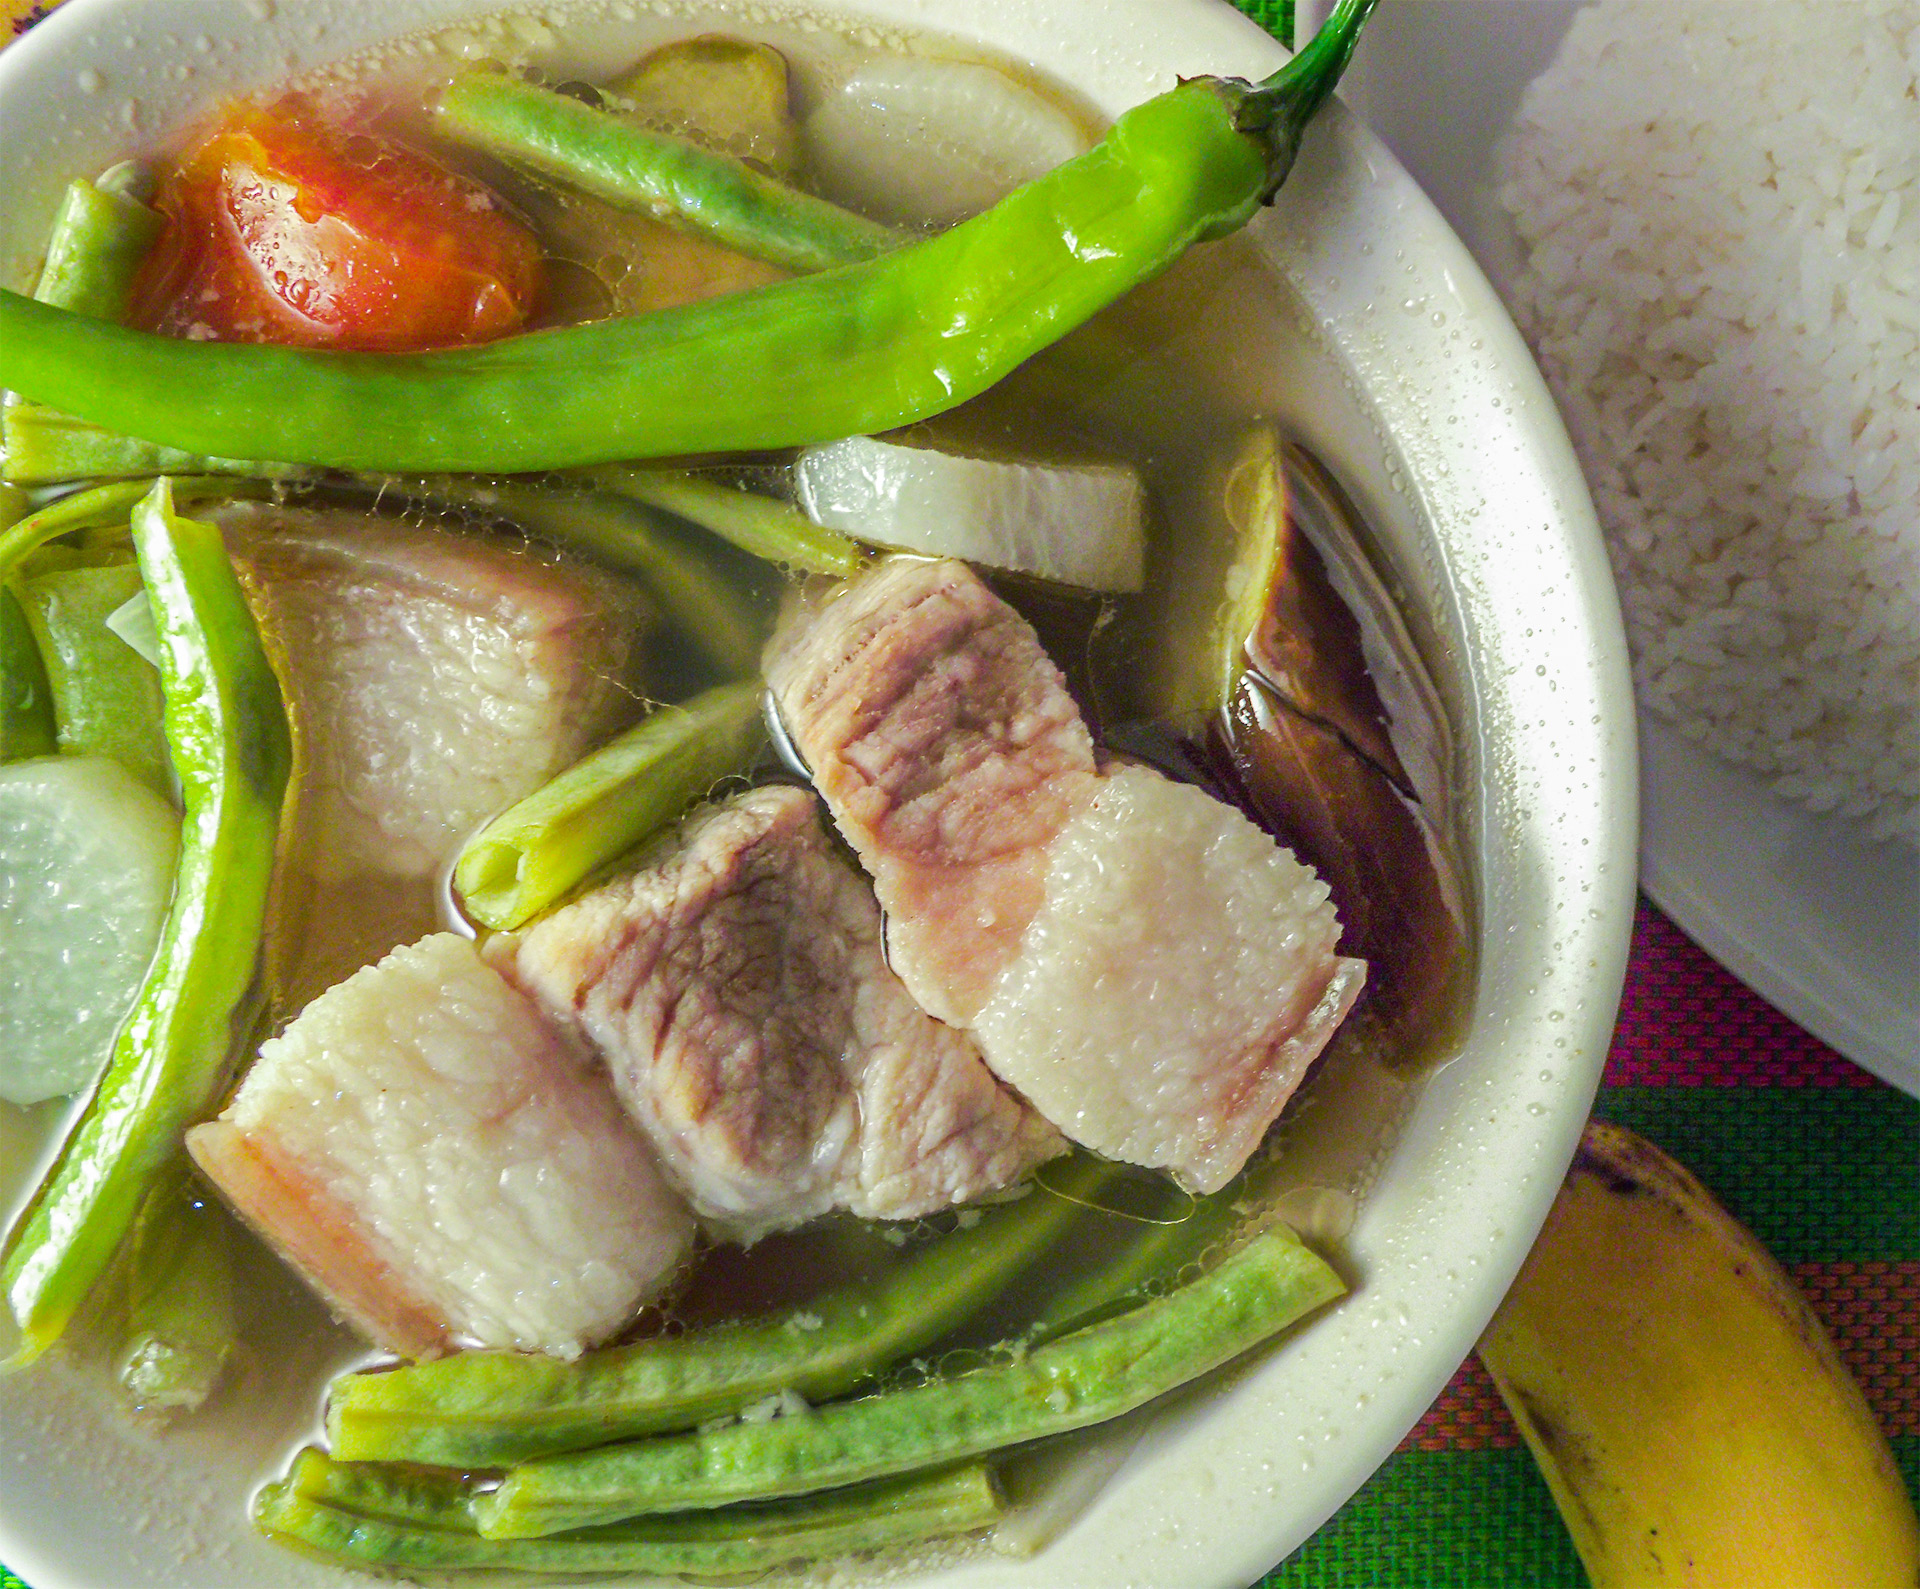 Pork Sinigang Recipe Uses Tamarind Sinigang Mix